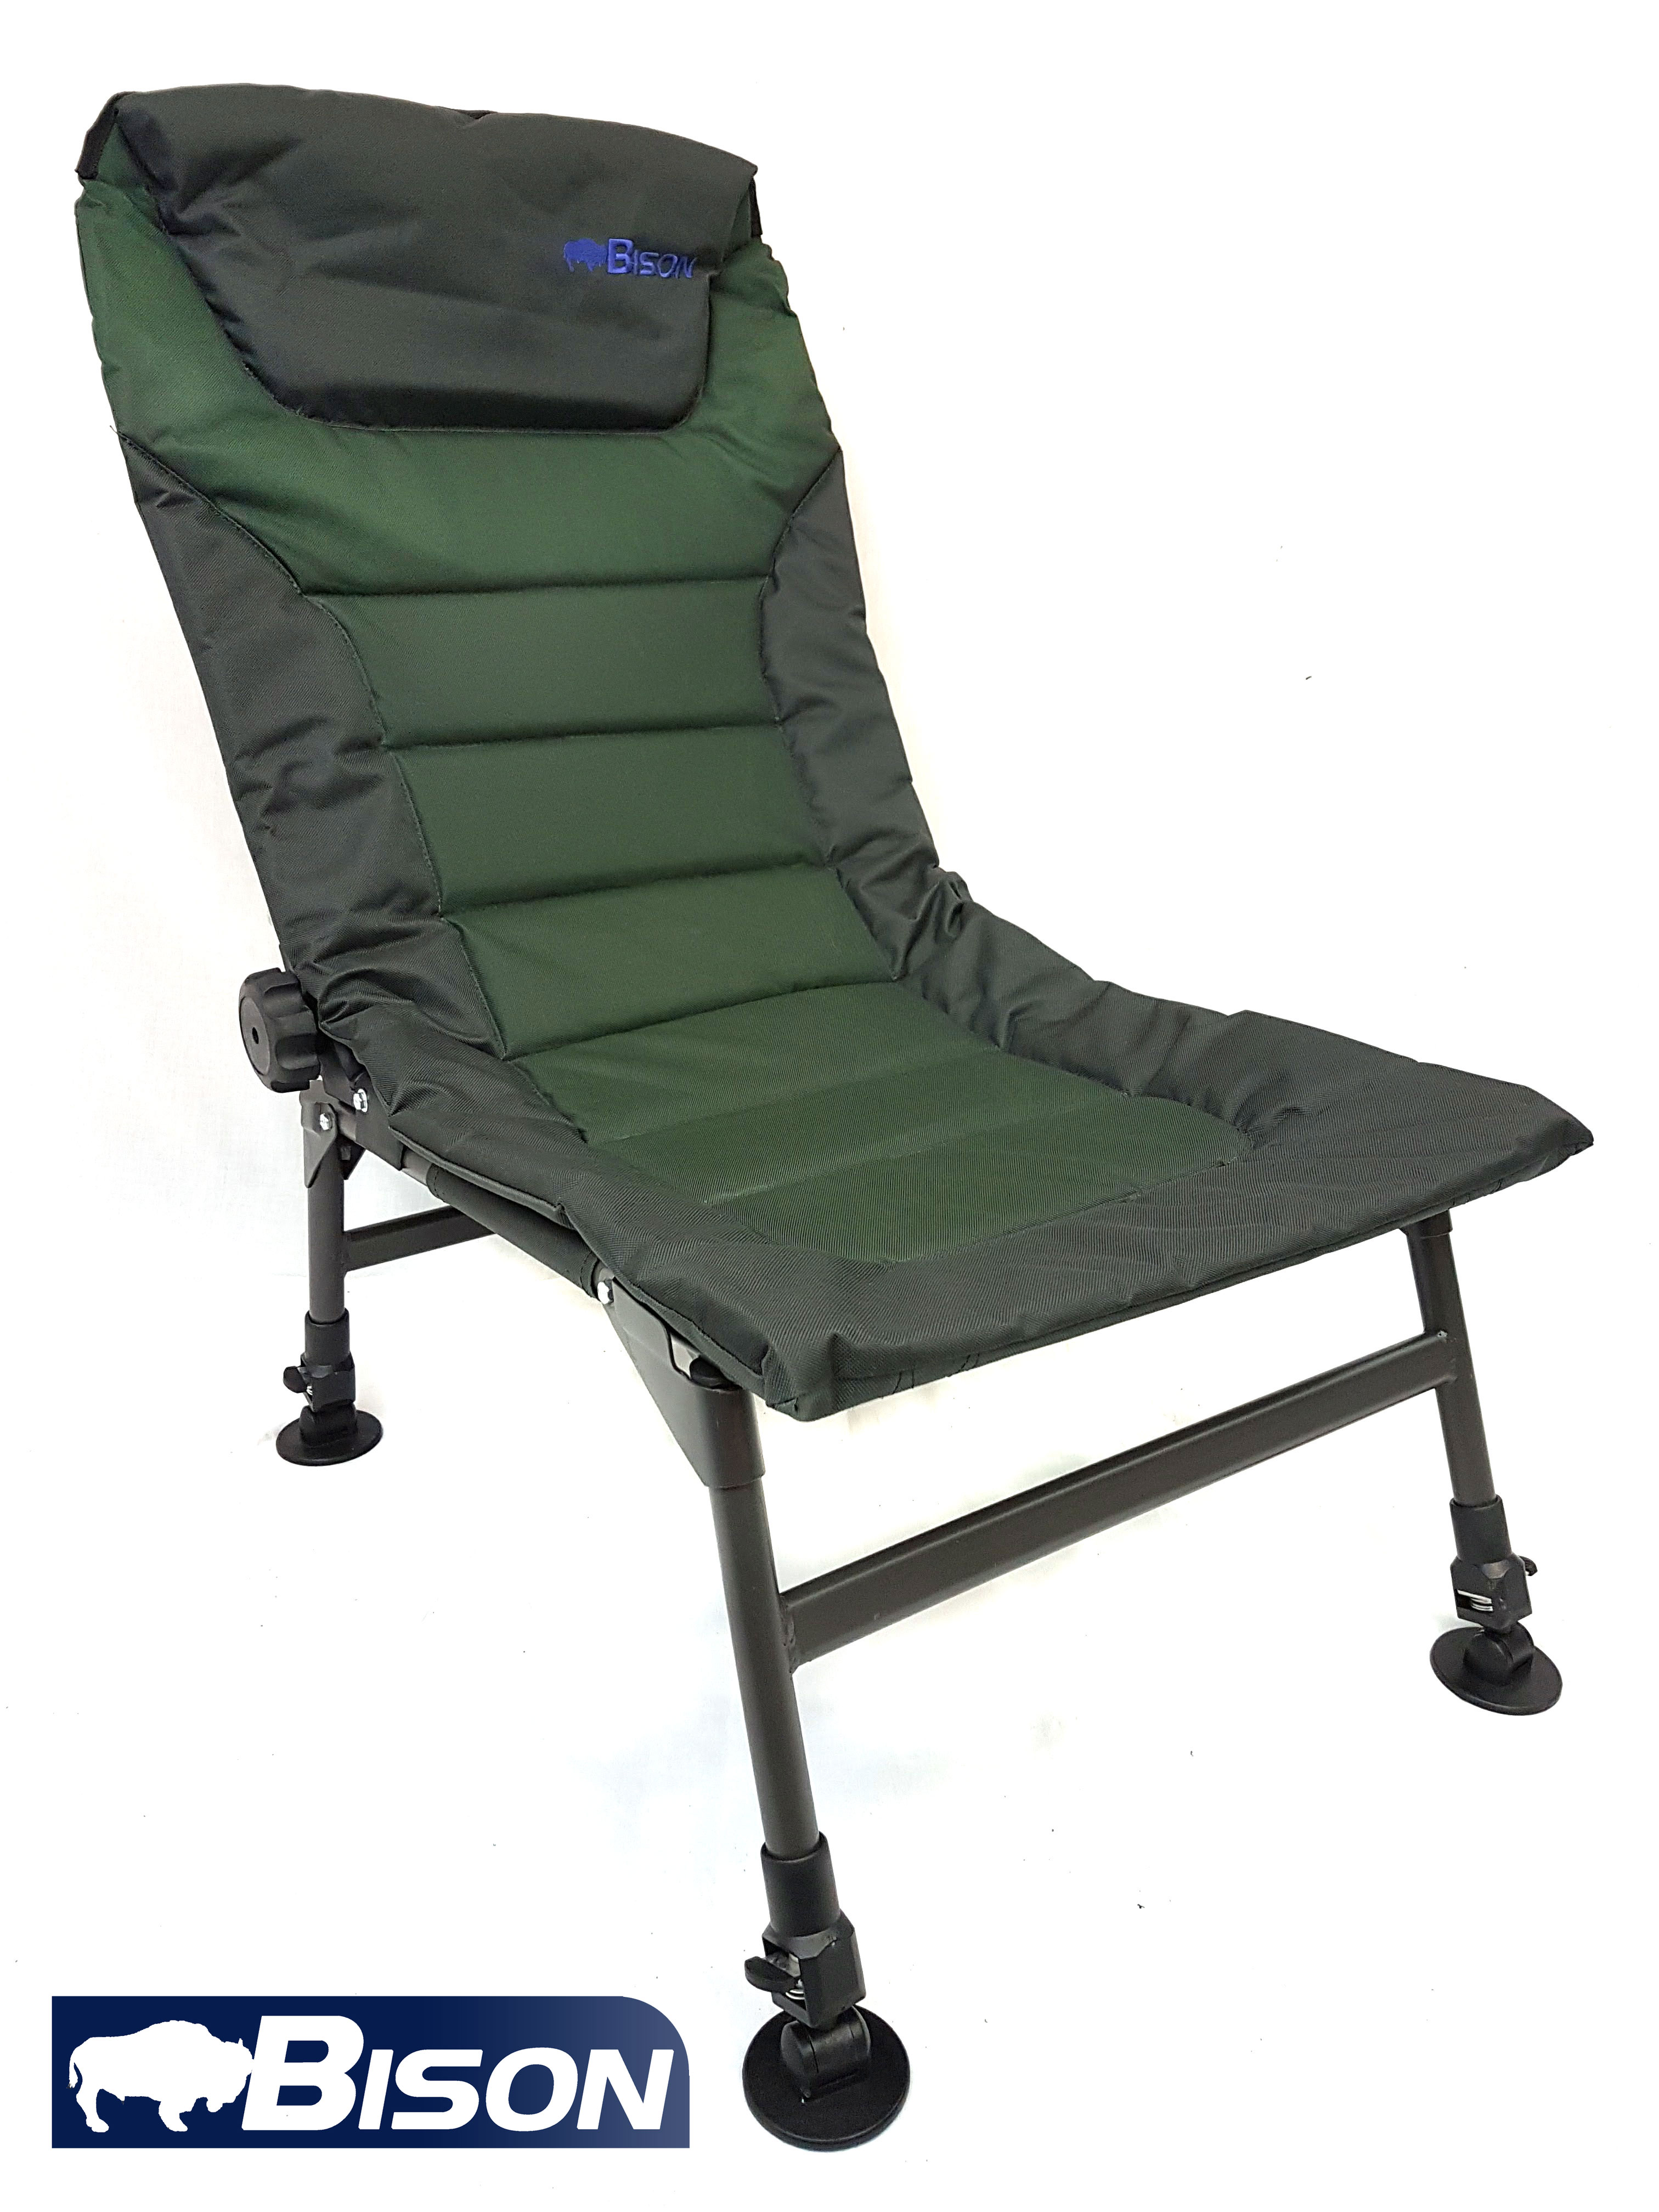 fishing chair with headrest add on bison adjustable legs and back recliner carp